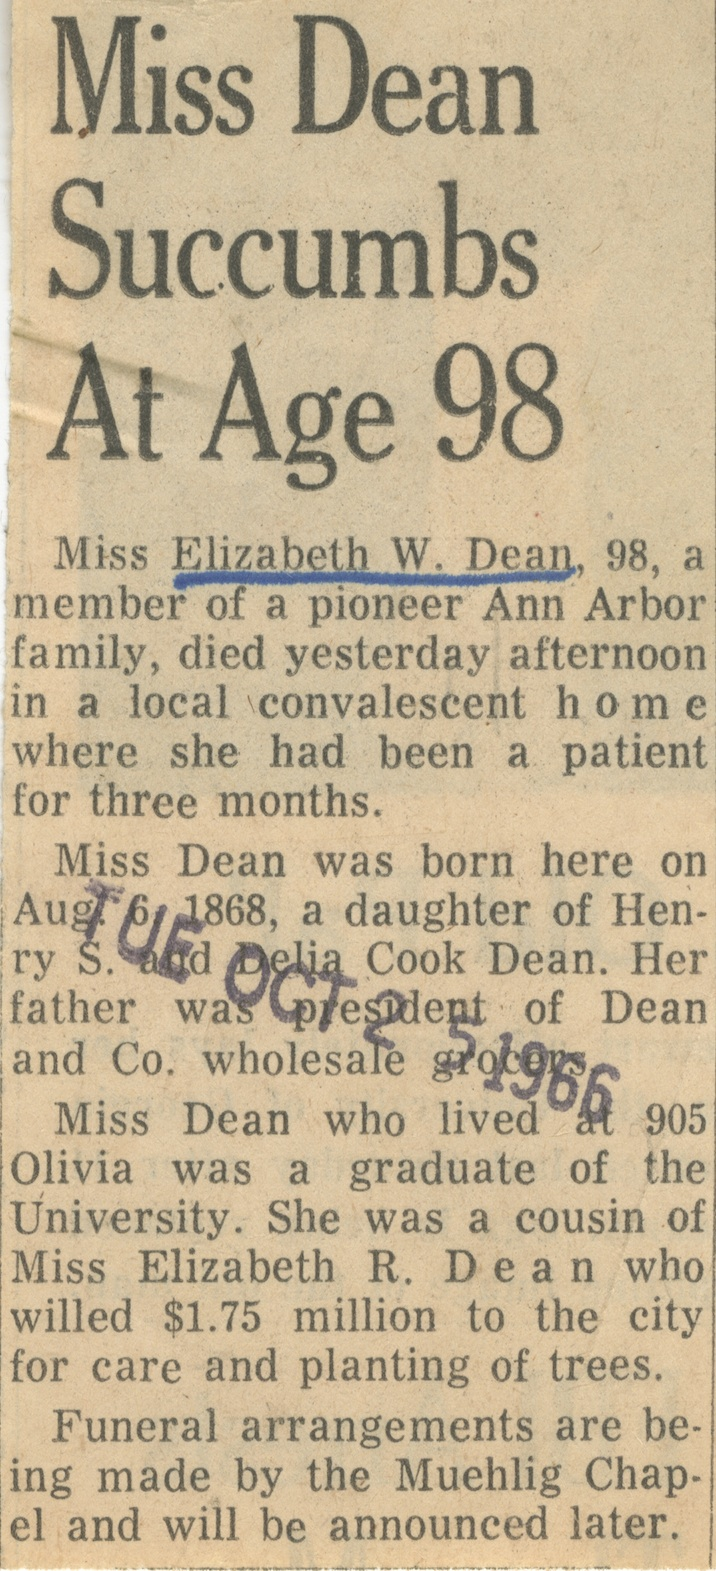 Miss Dean Succumbs at Age 98 image